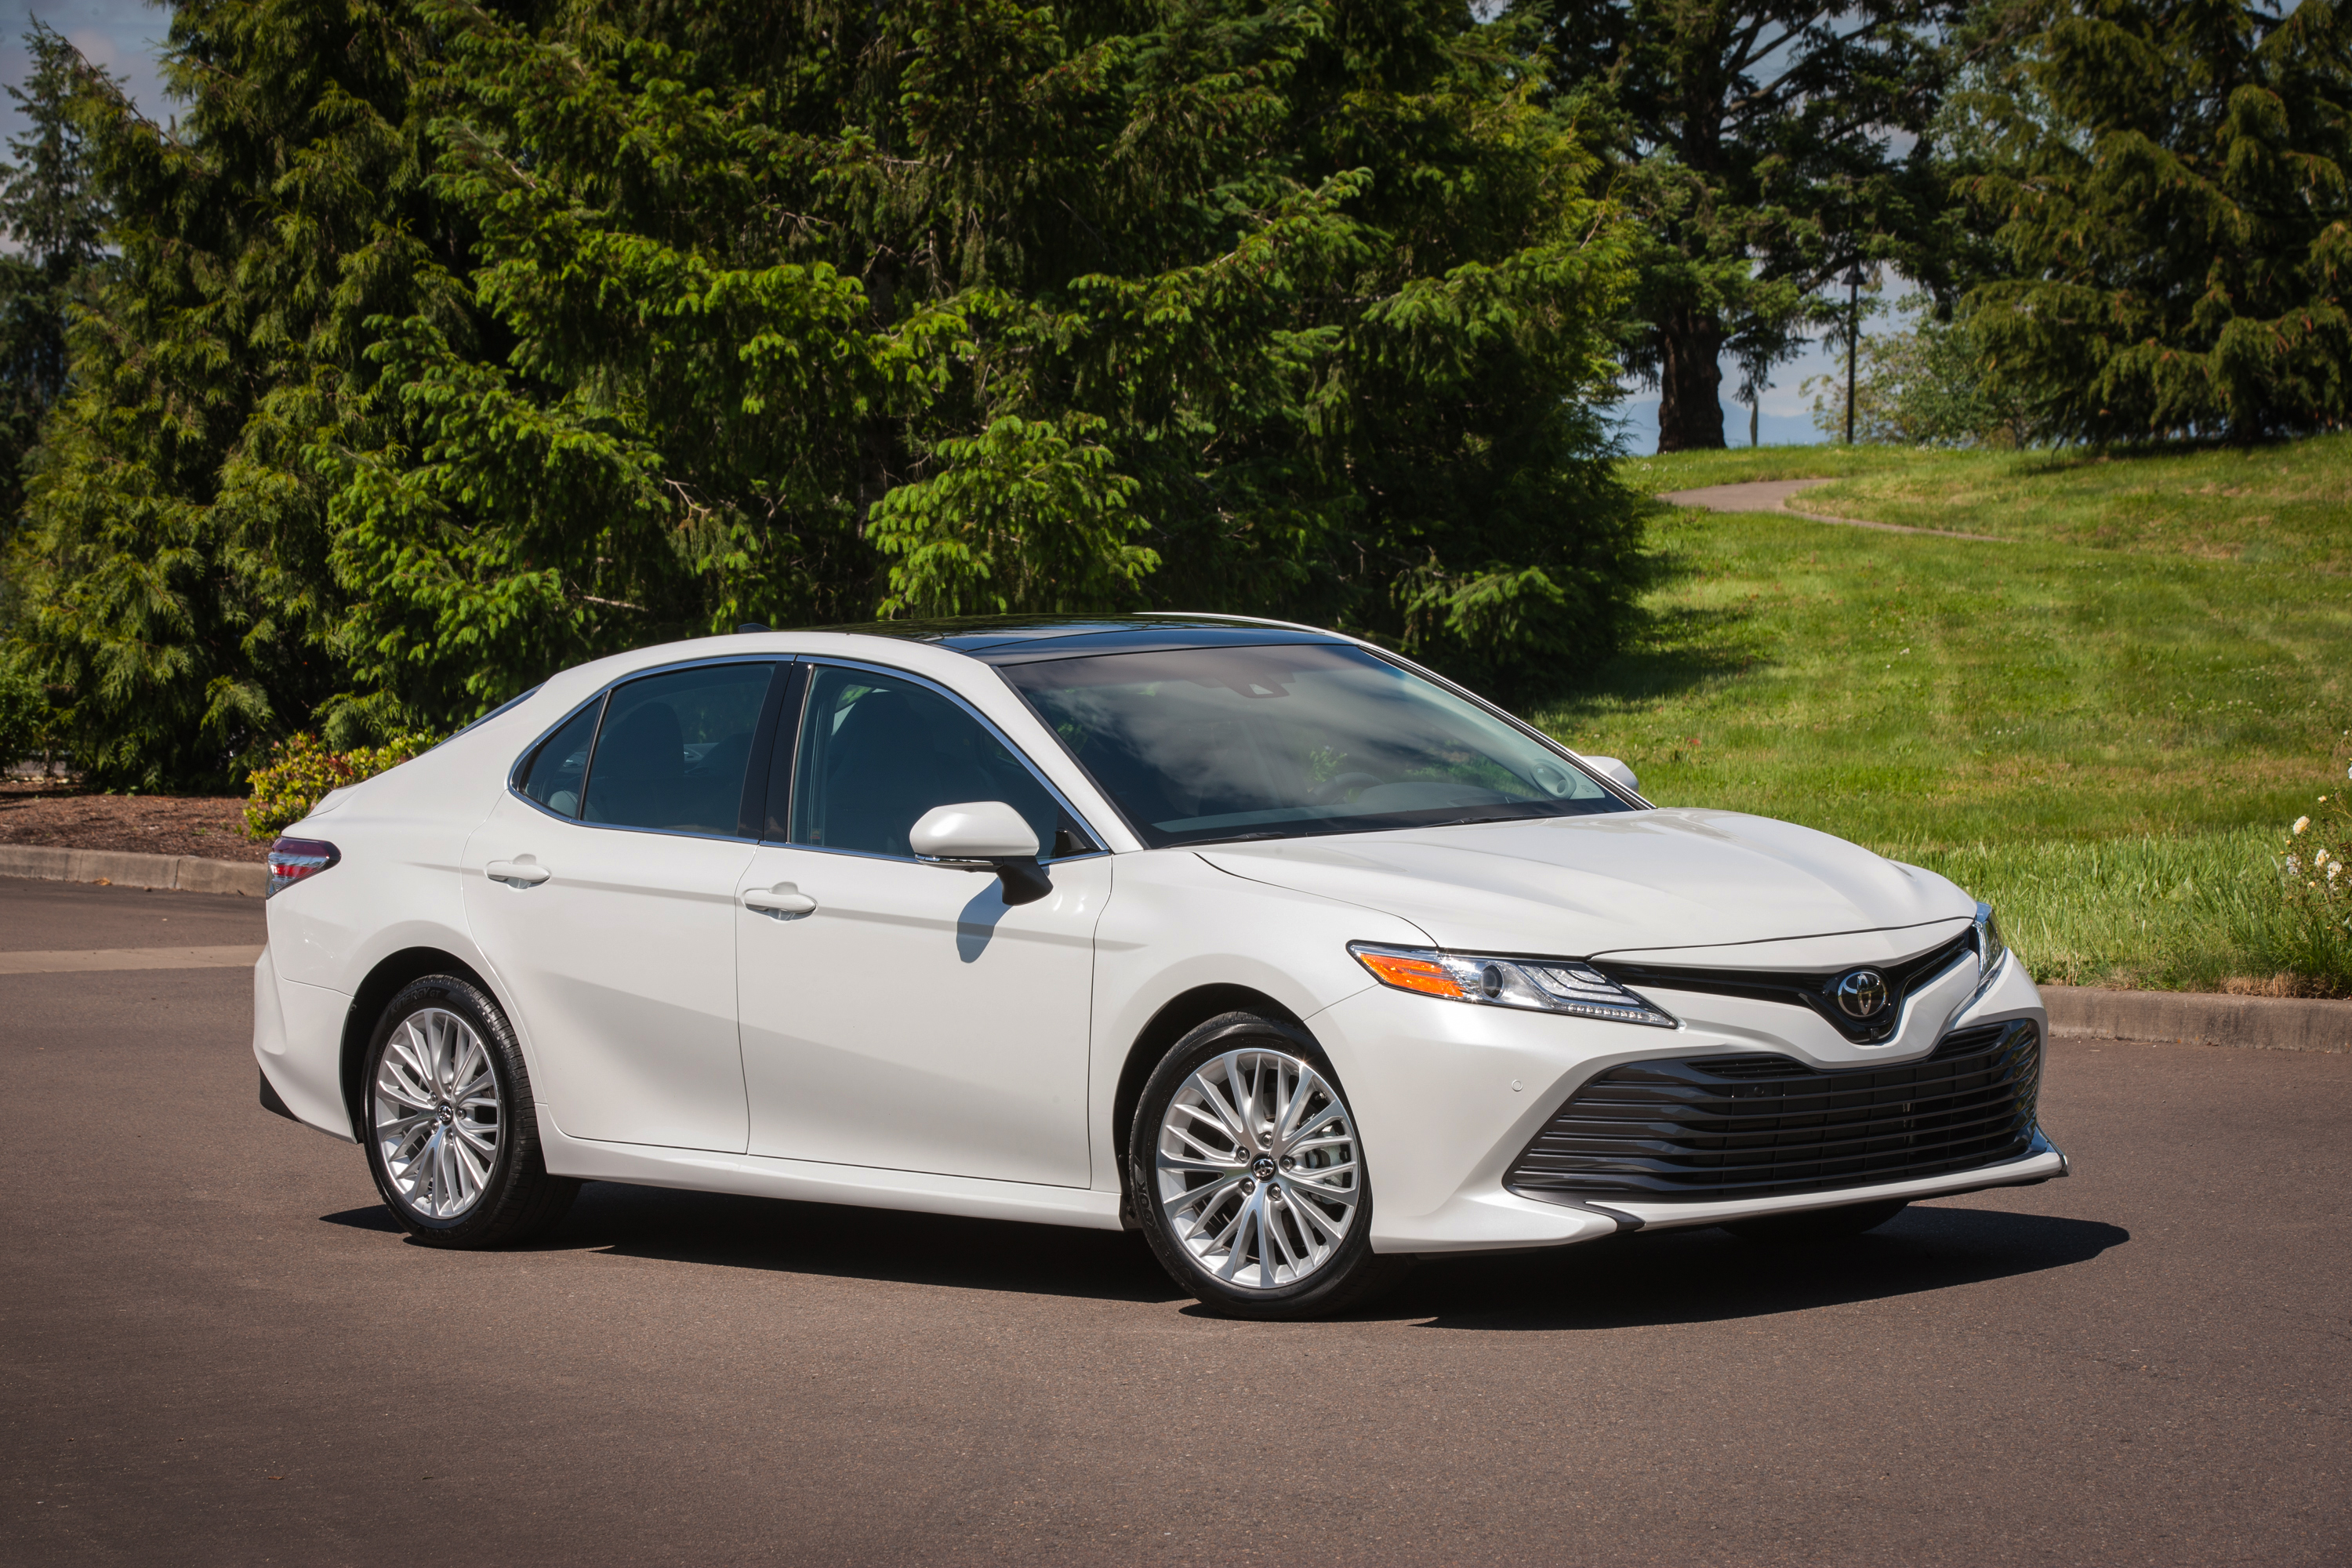 2018 Toyota Camry detailed ahead of US sales launch Image ...